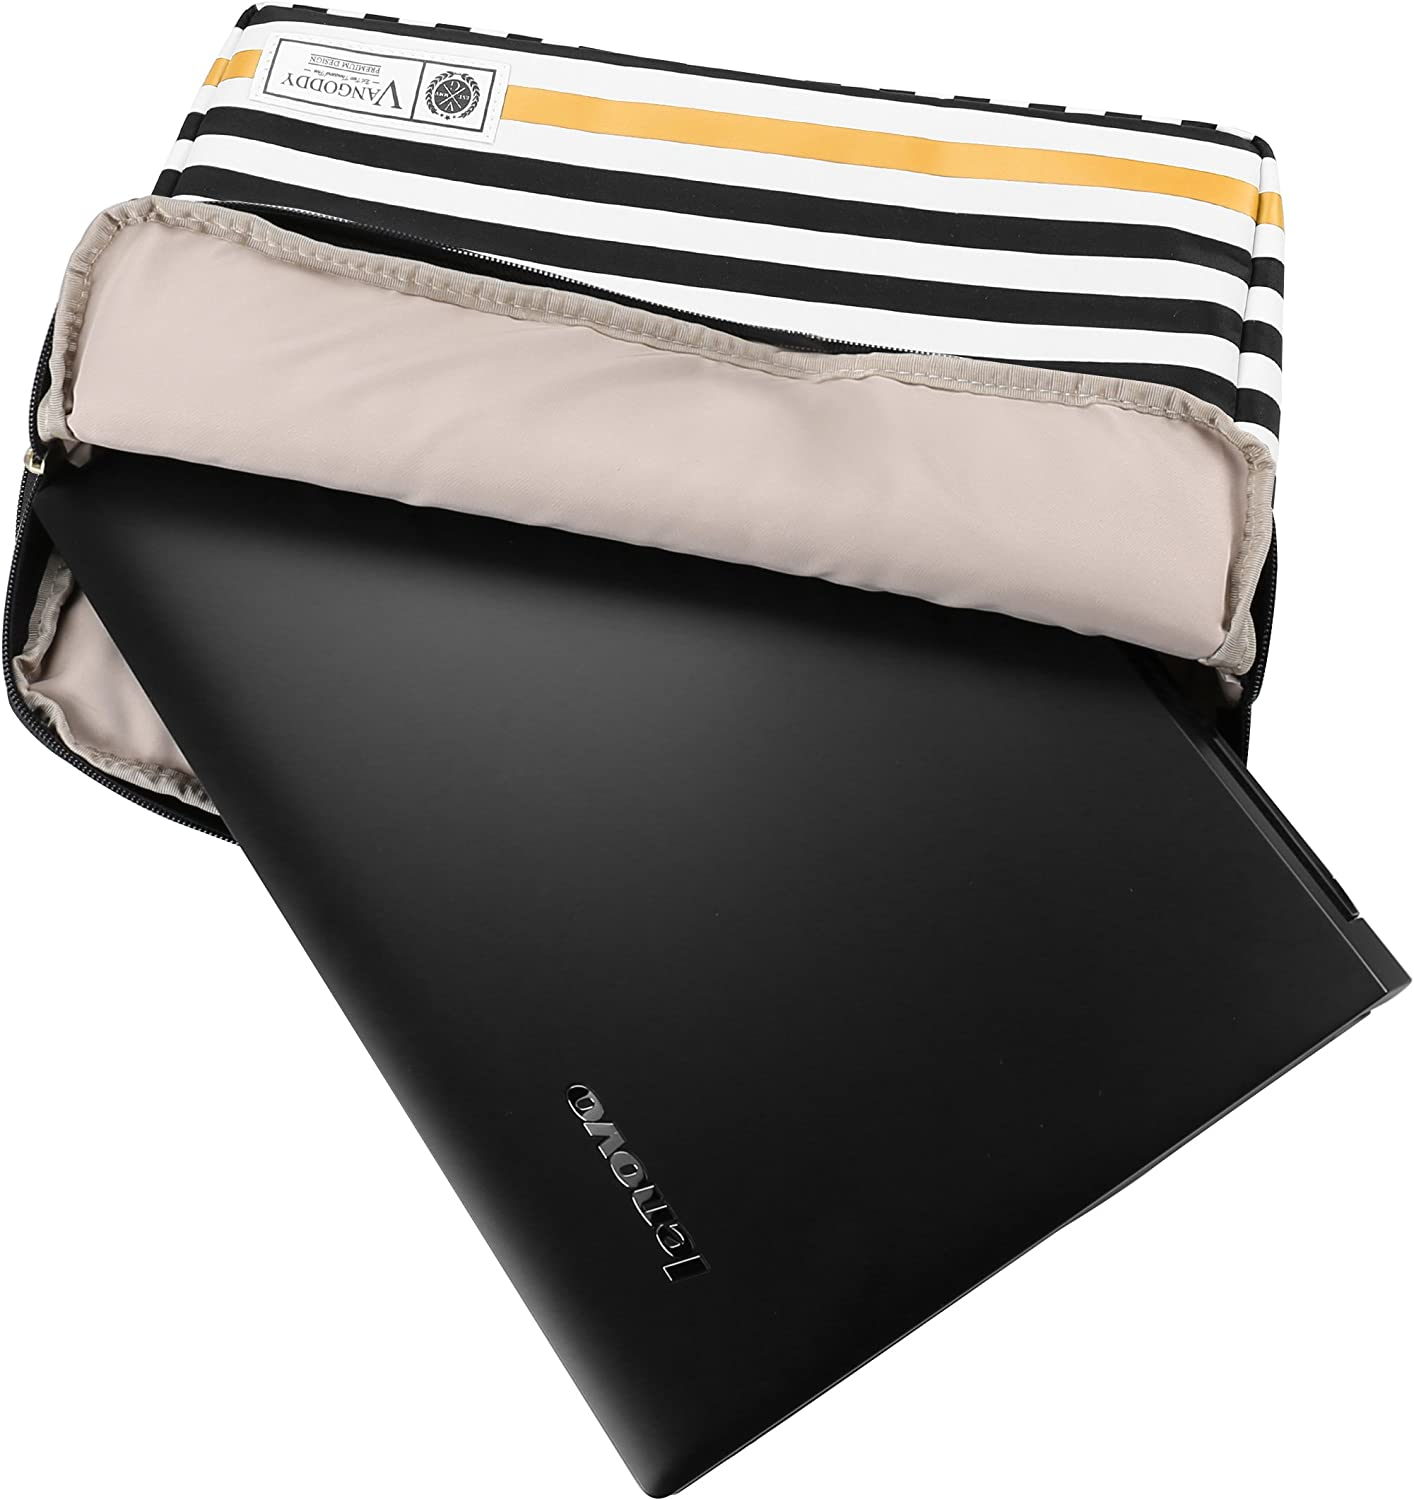 XPS 13 Series 11.6 inch 13.3 inch Tablet Laptop with Wireless Mouse and Headphone Vangoddy Luxe R Series Black White Stripe Lightweight Compact Padded Carrying Sleeve for Dell Inspiron 11 3000